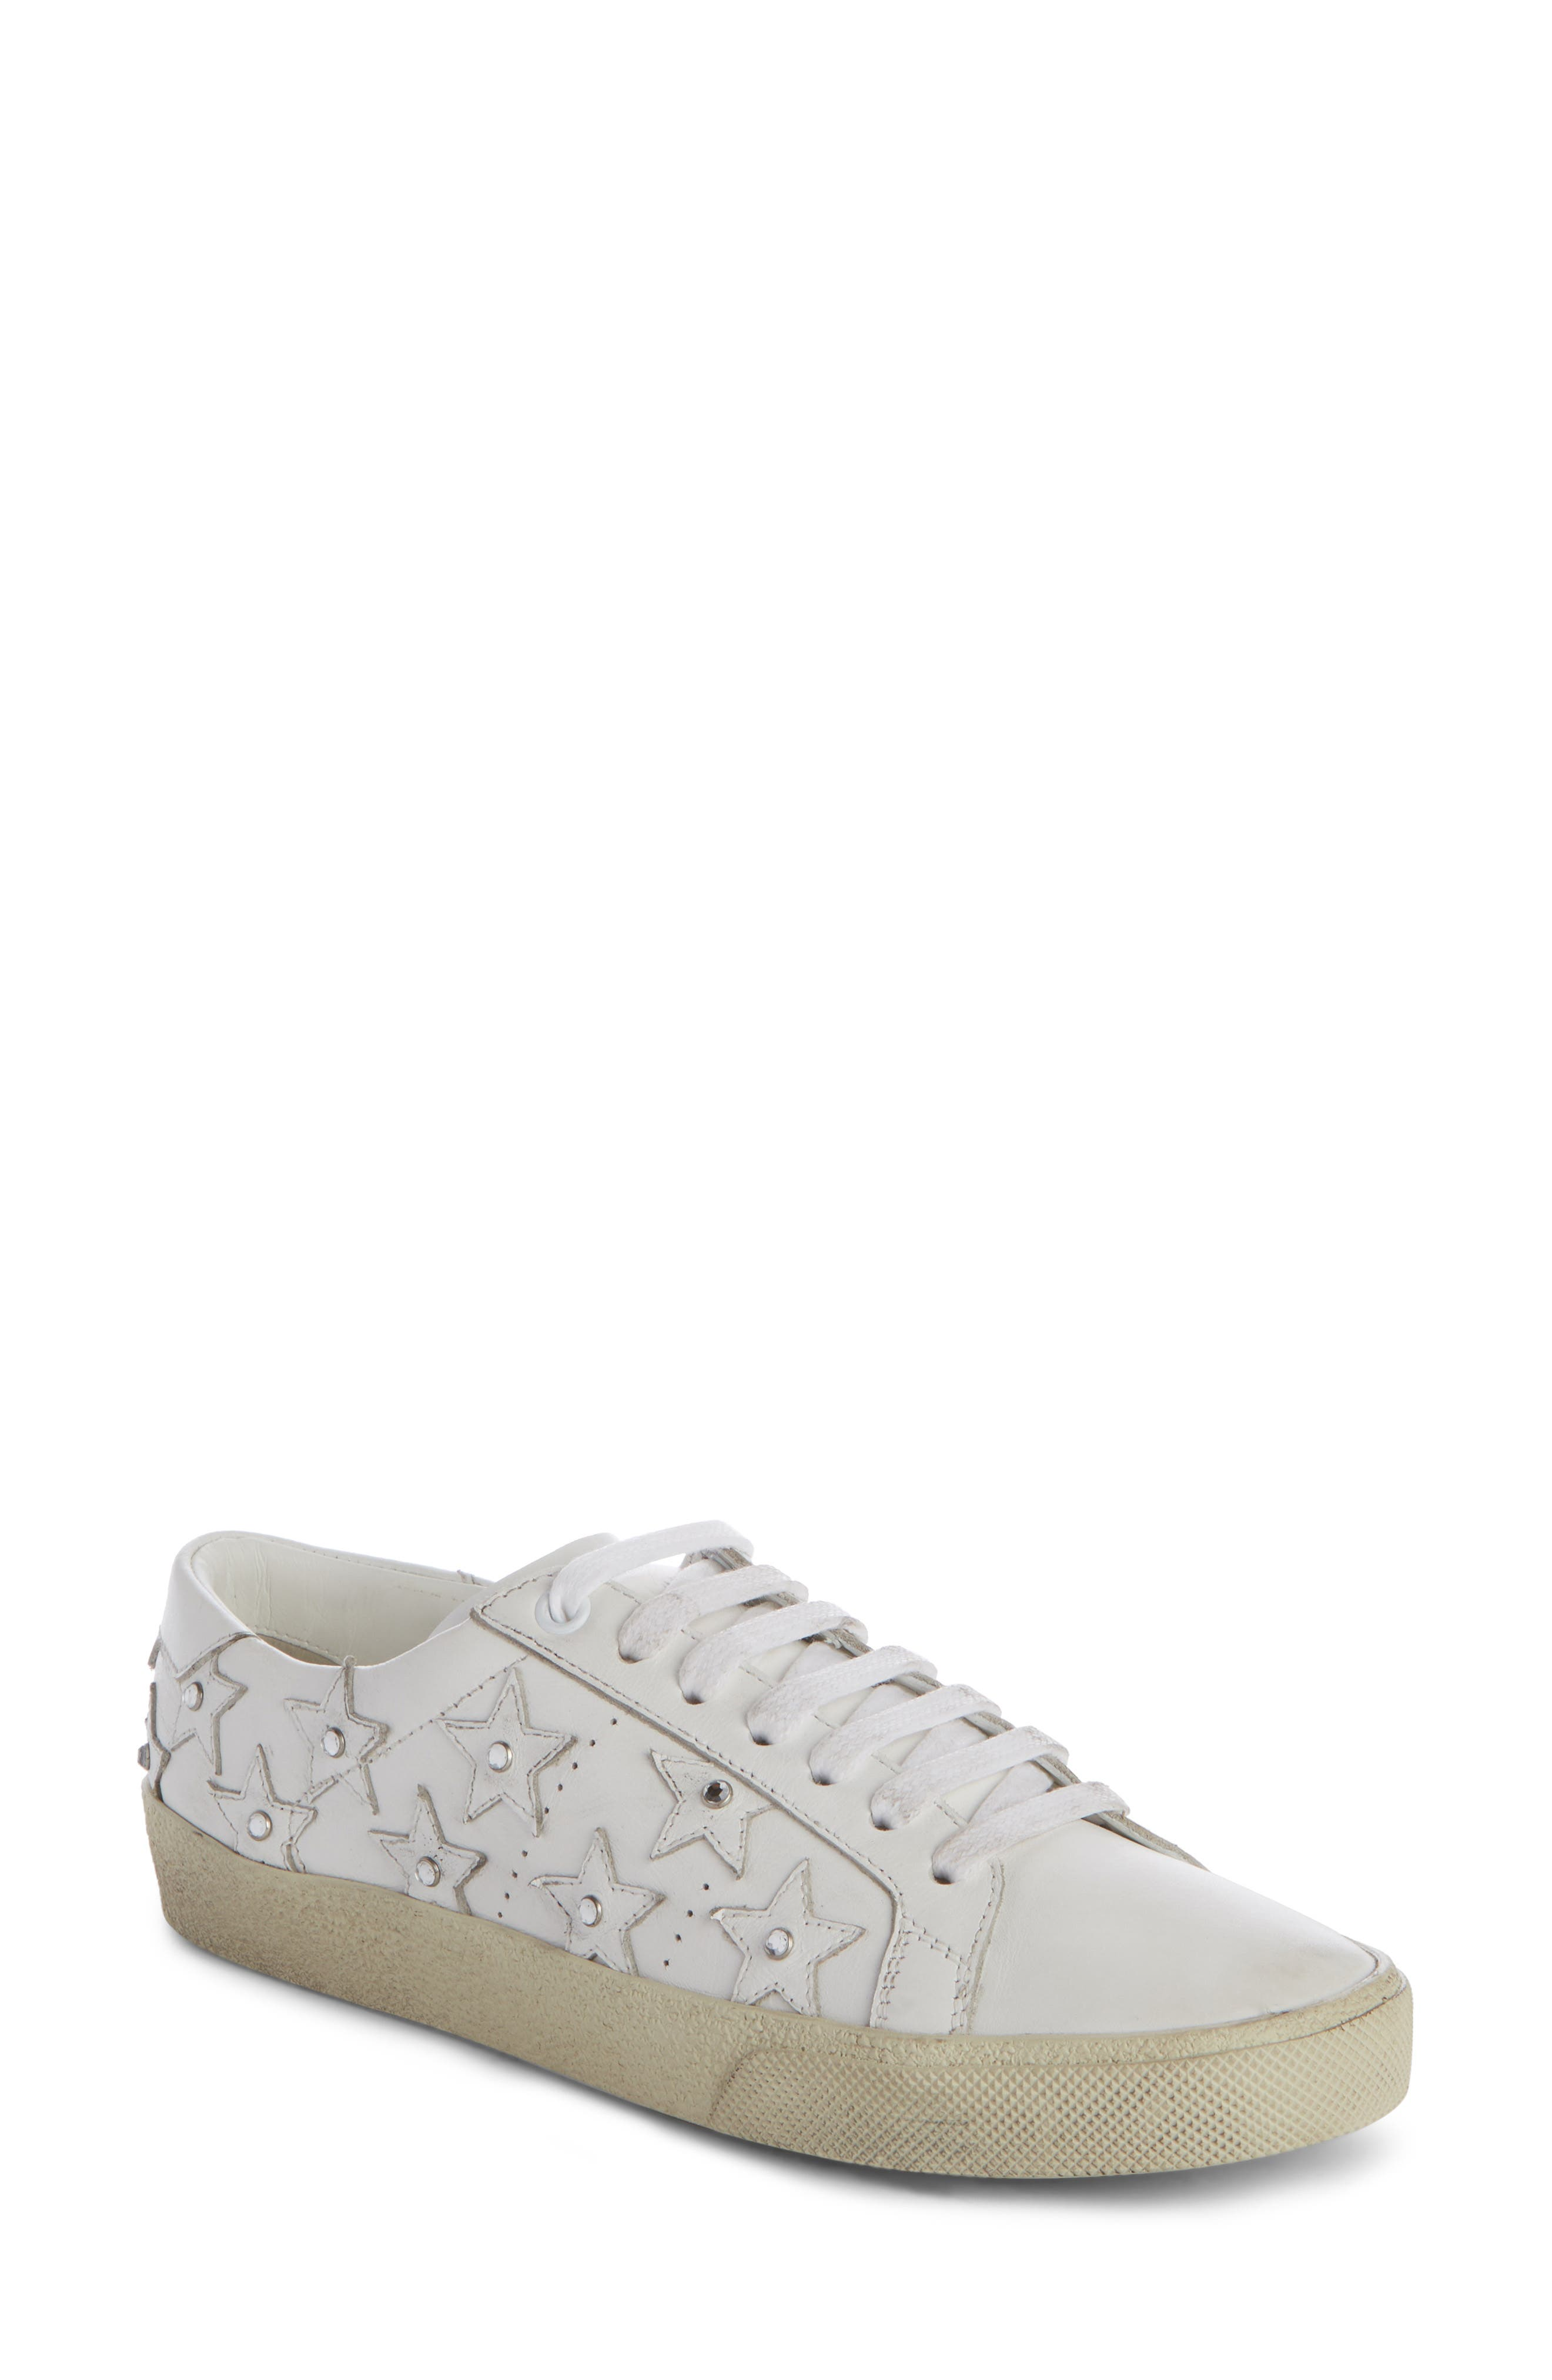 Main Image - Saint Laurent Court Classic Embellished Star Sneaker (Women)